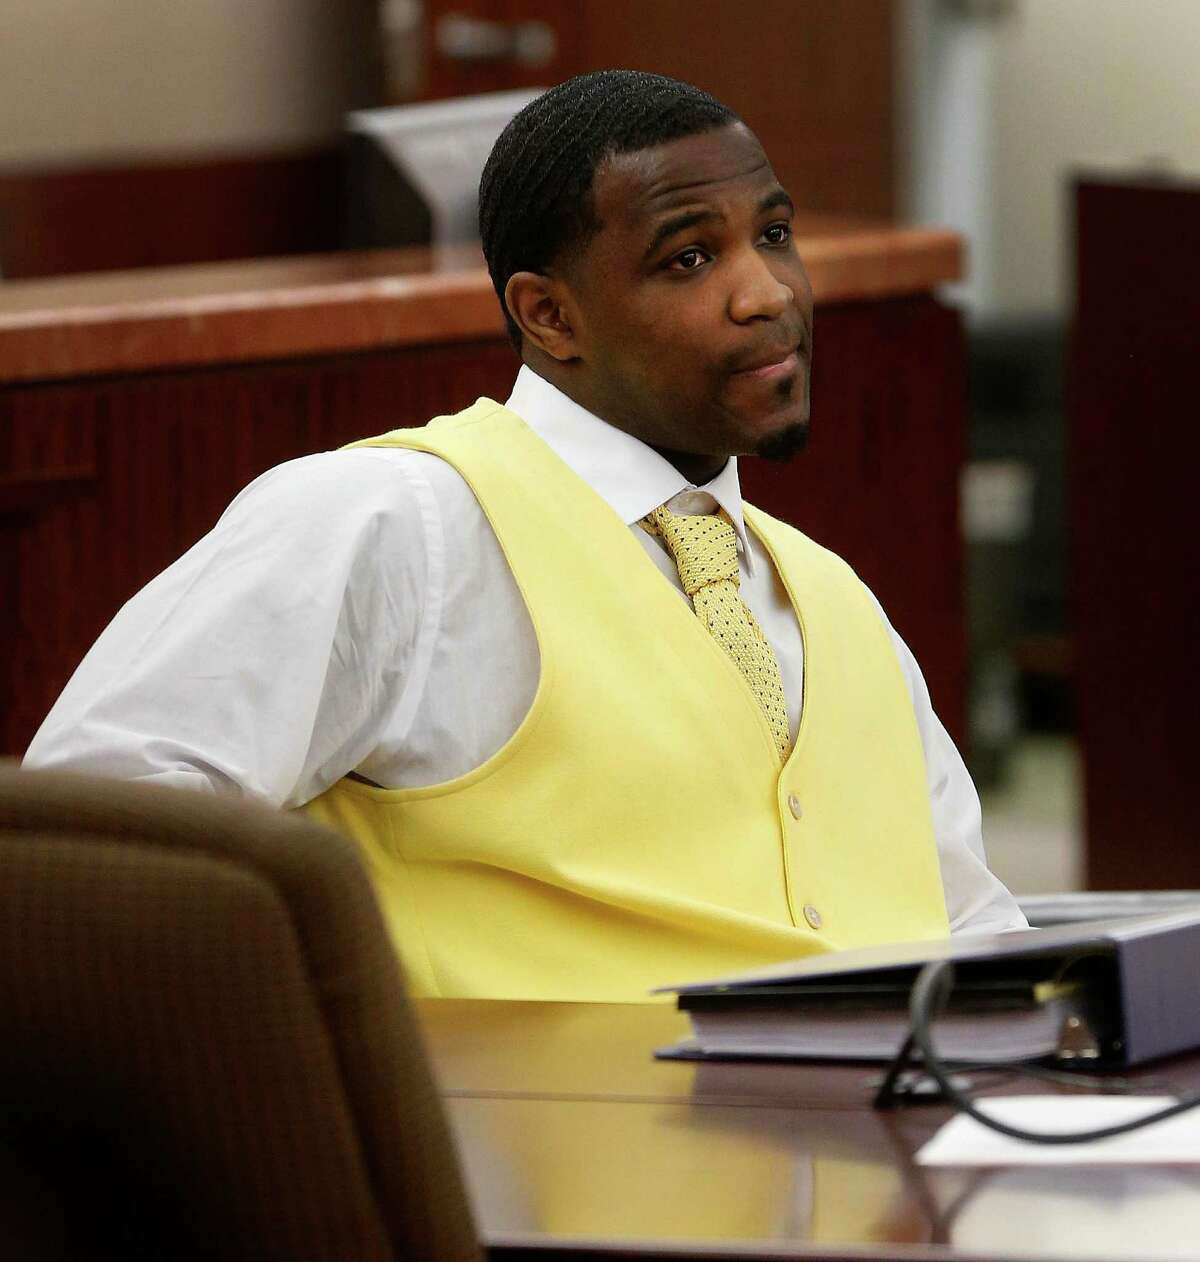 Neal Bland in court for the start of his trial, Tuesday, Feb. 2, 2016, for the murder of Joshua Woods who was killed for the AIR Jordan shoes he just purchased on the release day.